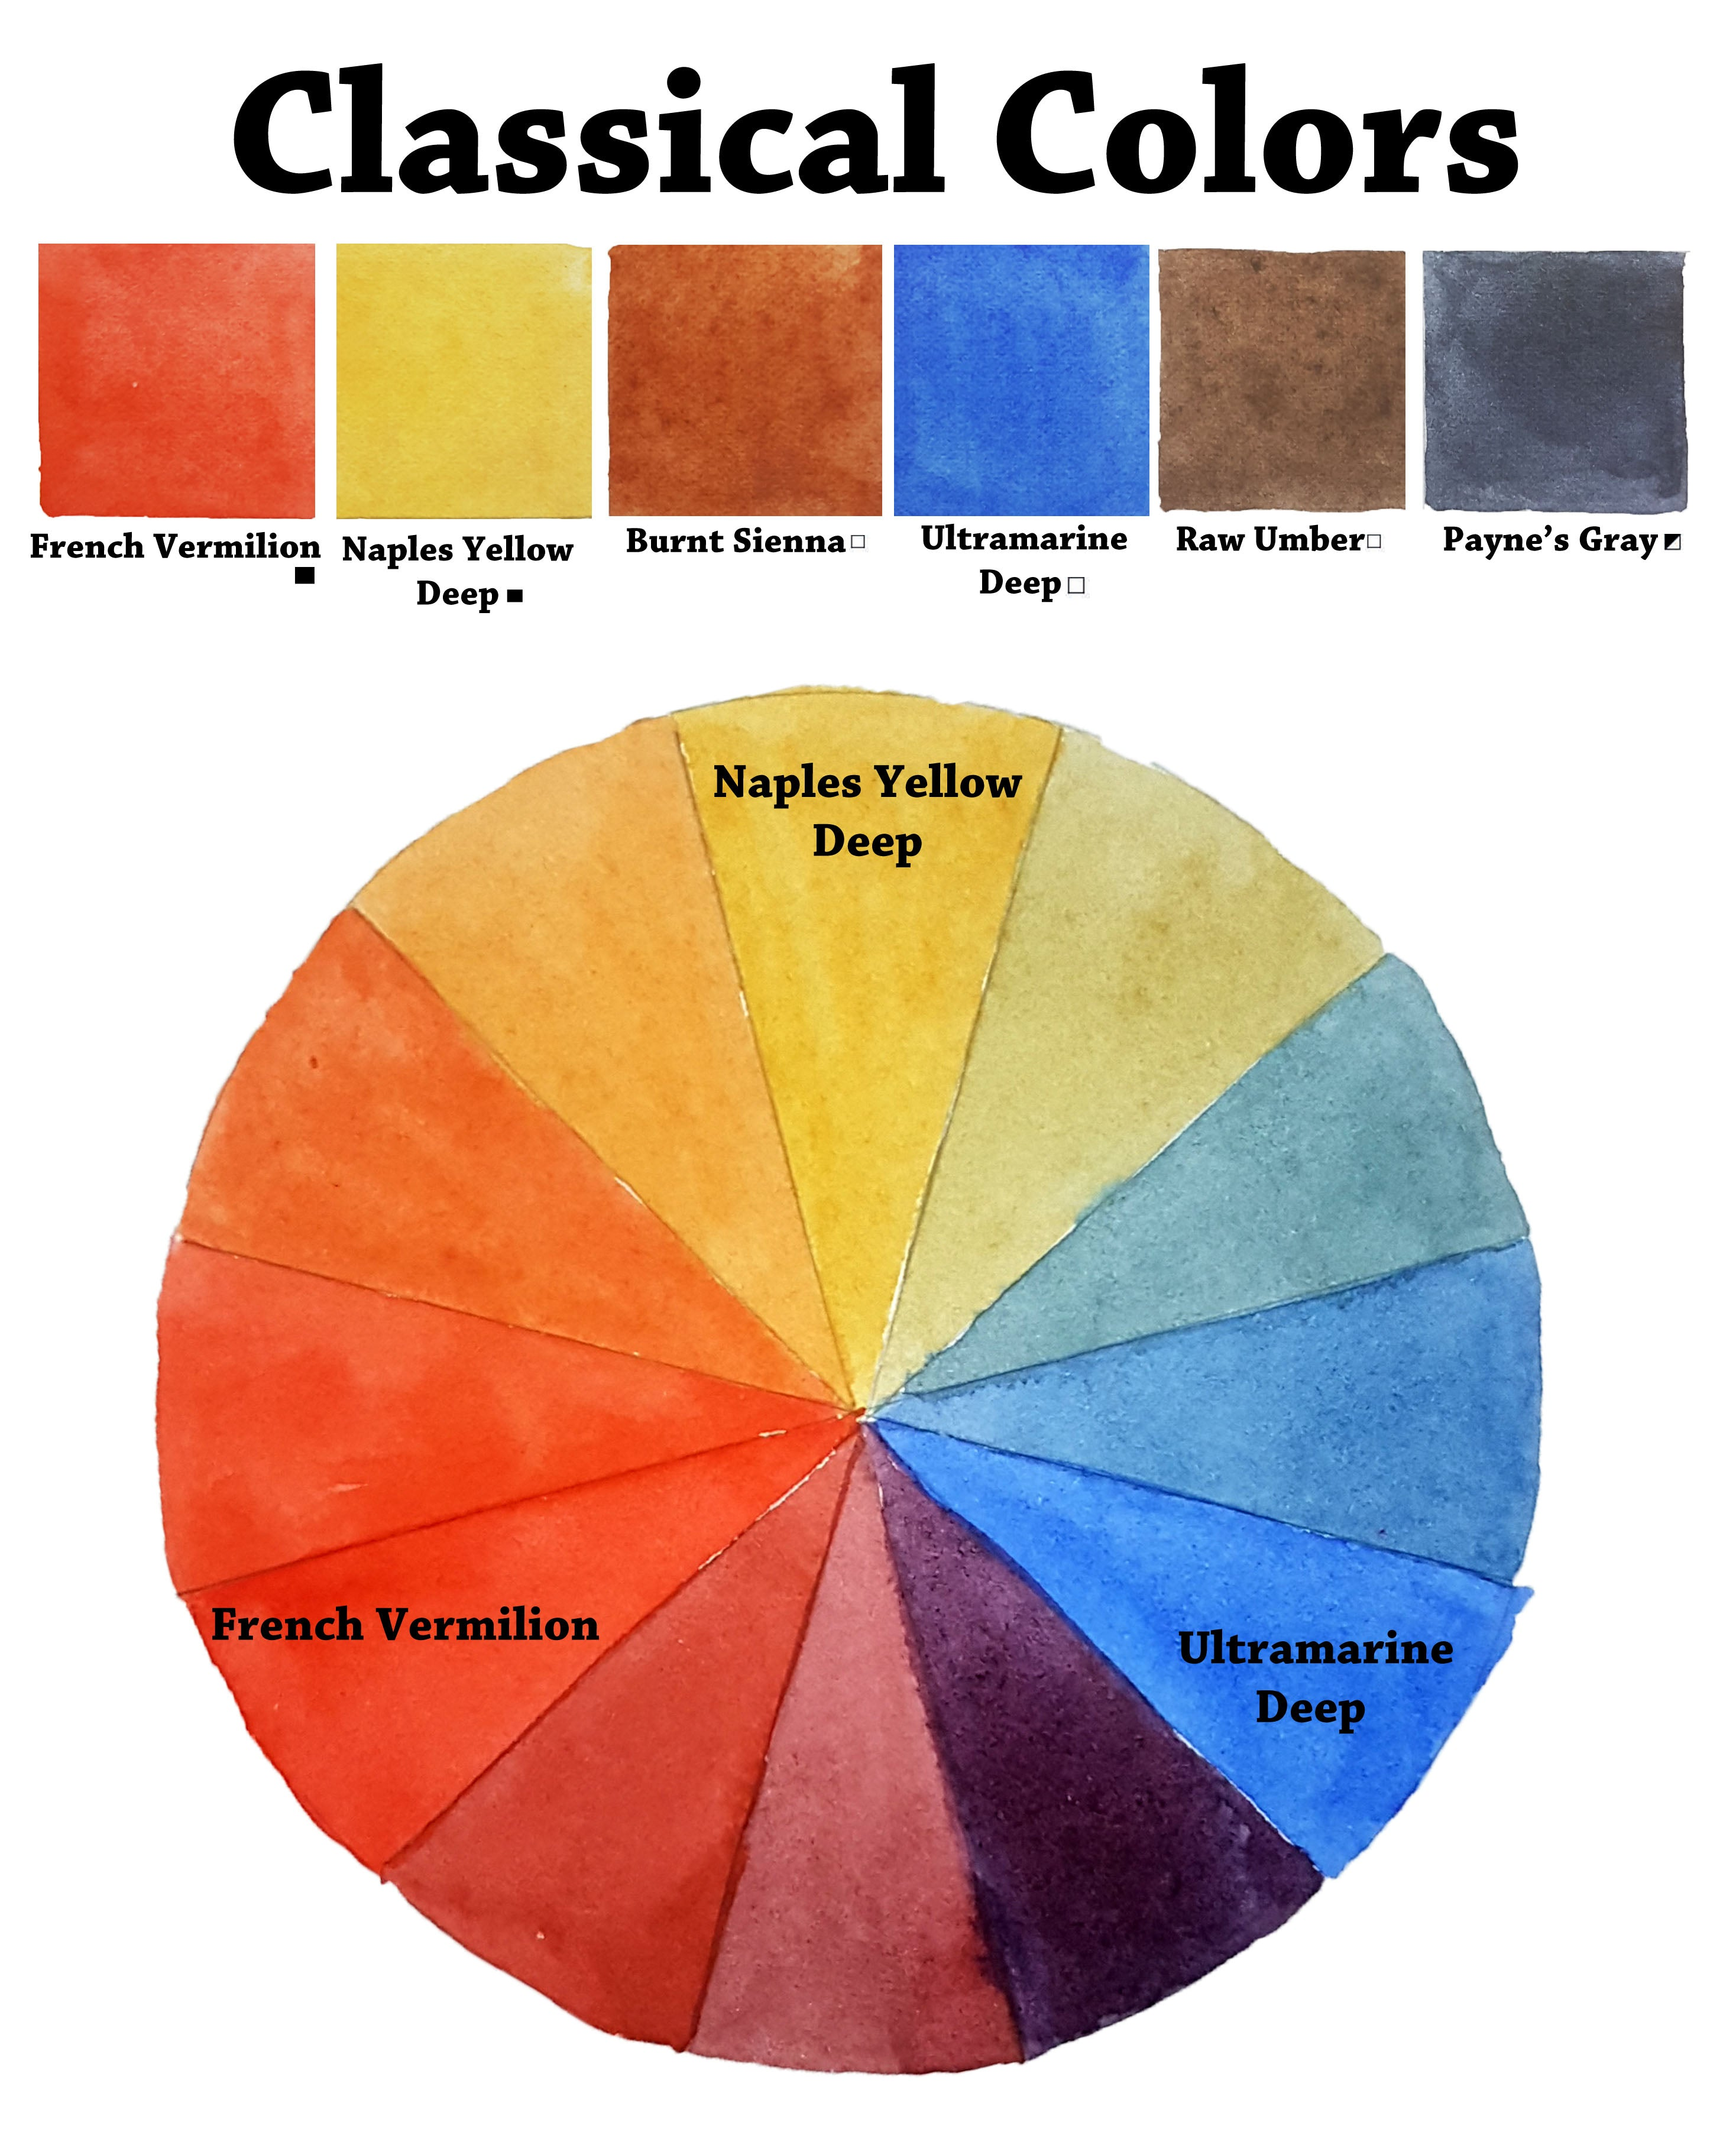 Hair color Capus: a palette of saturated hues